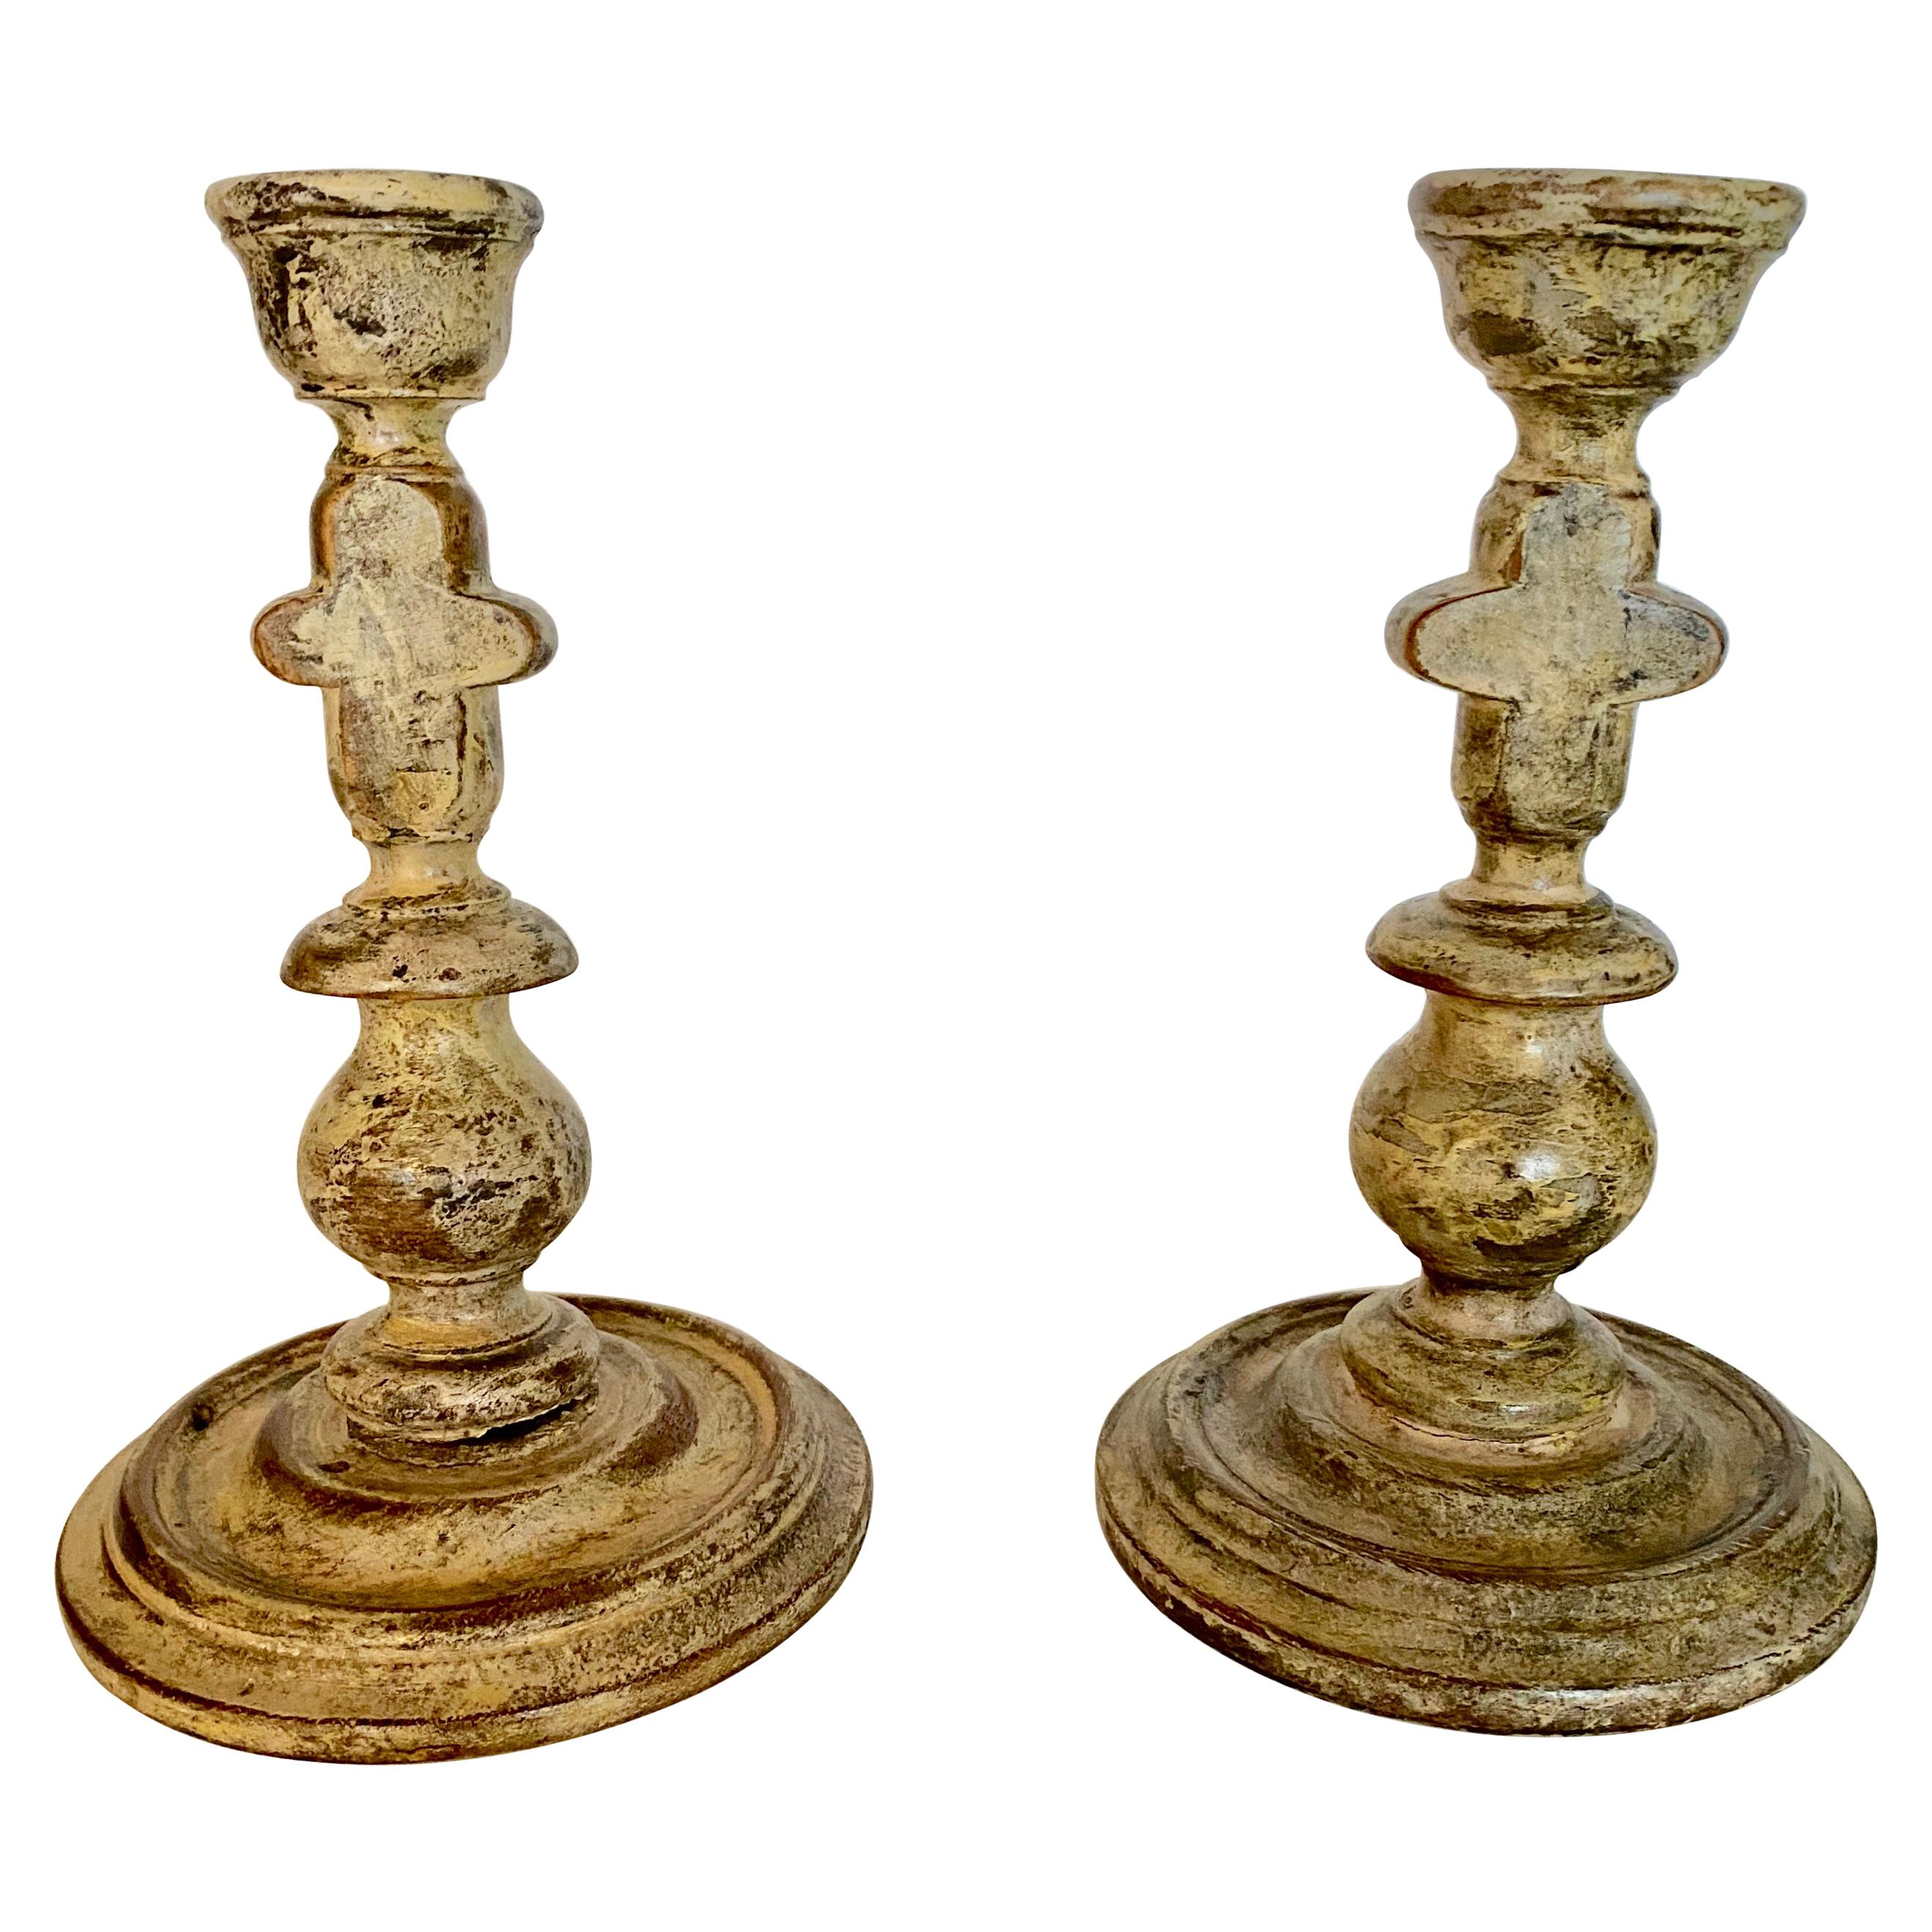 Pair of Carved Wood Candle Sticks